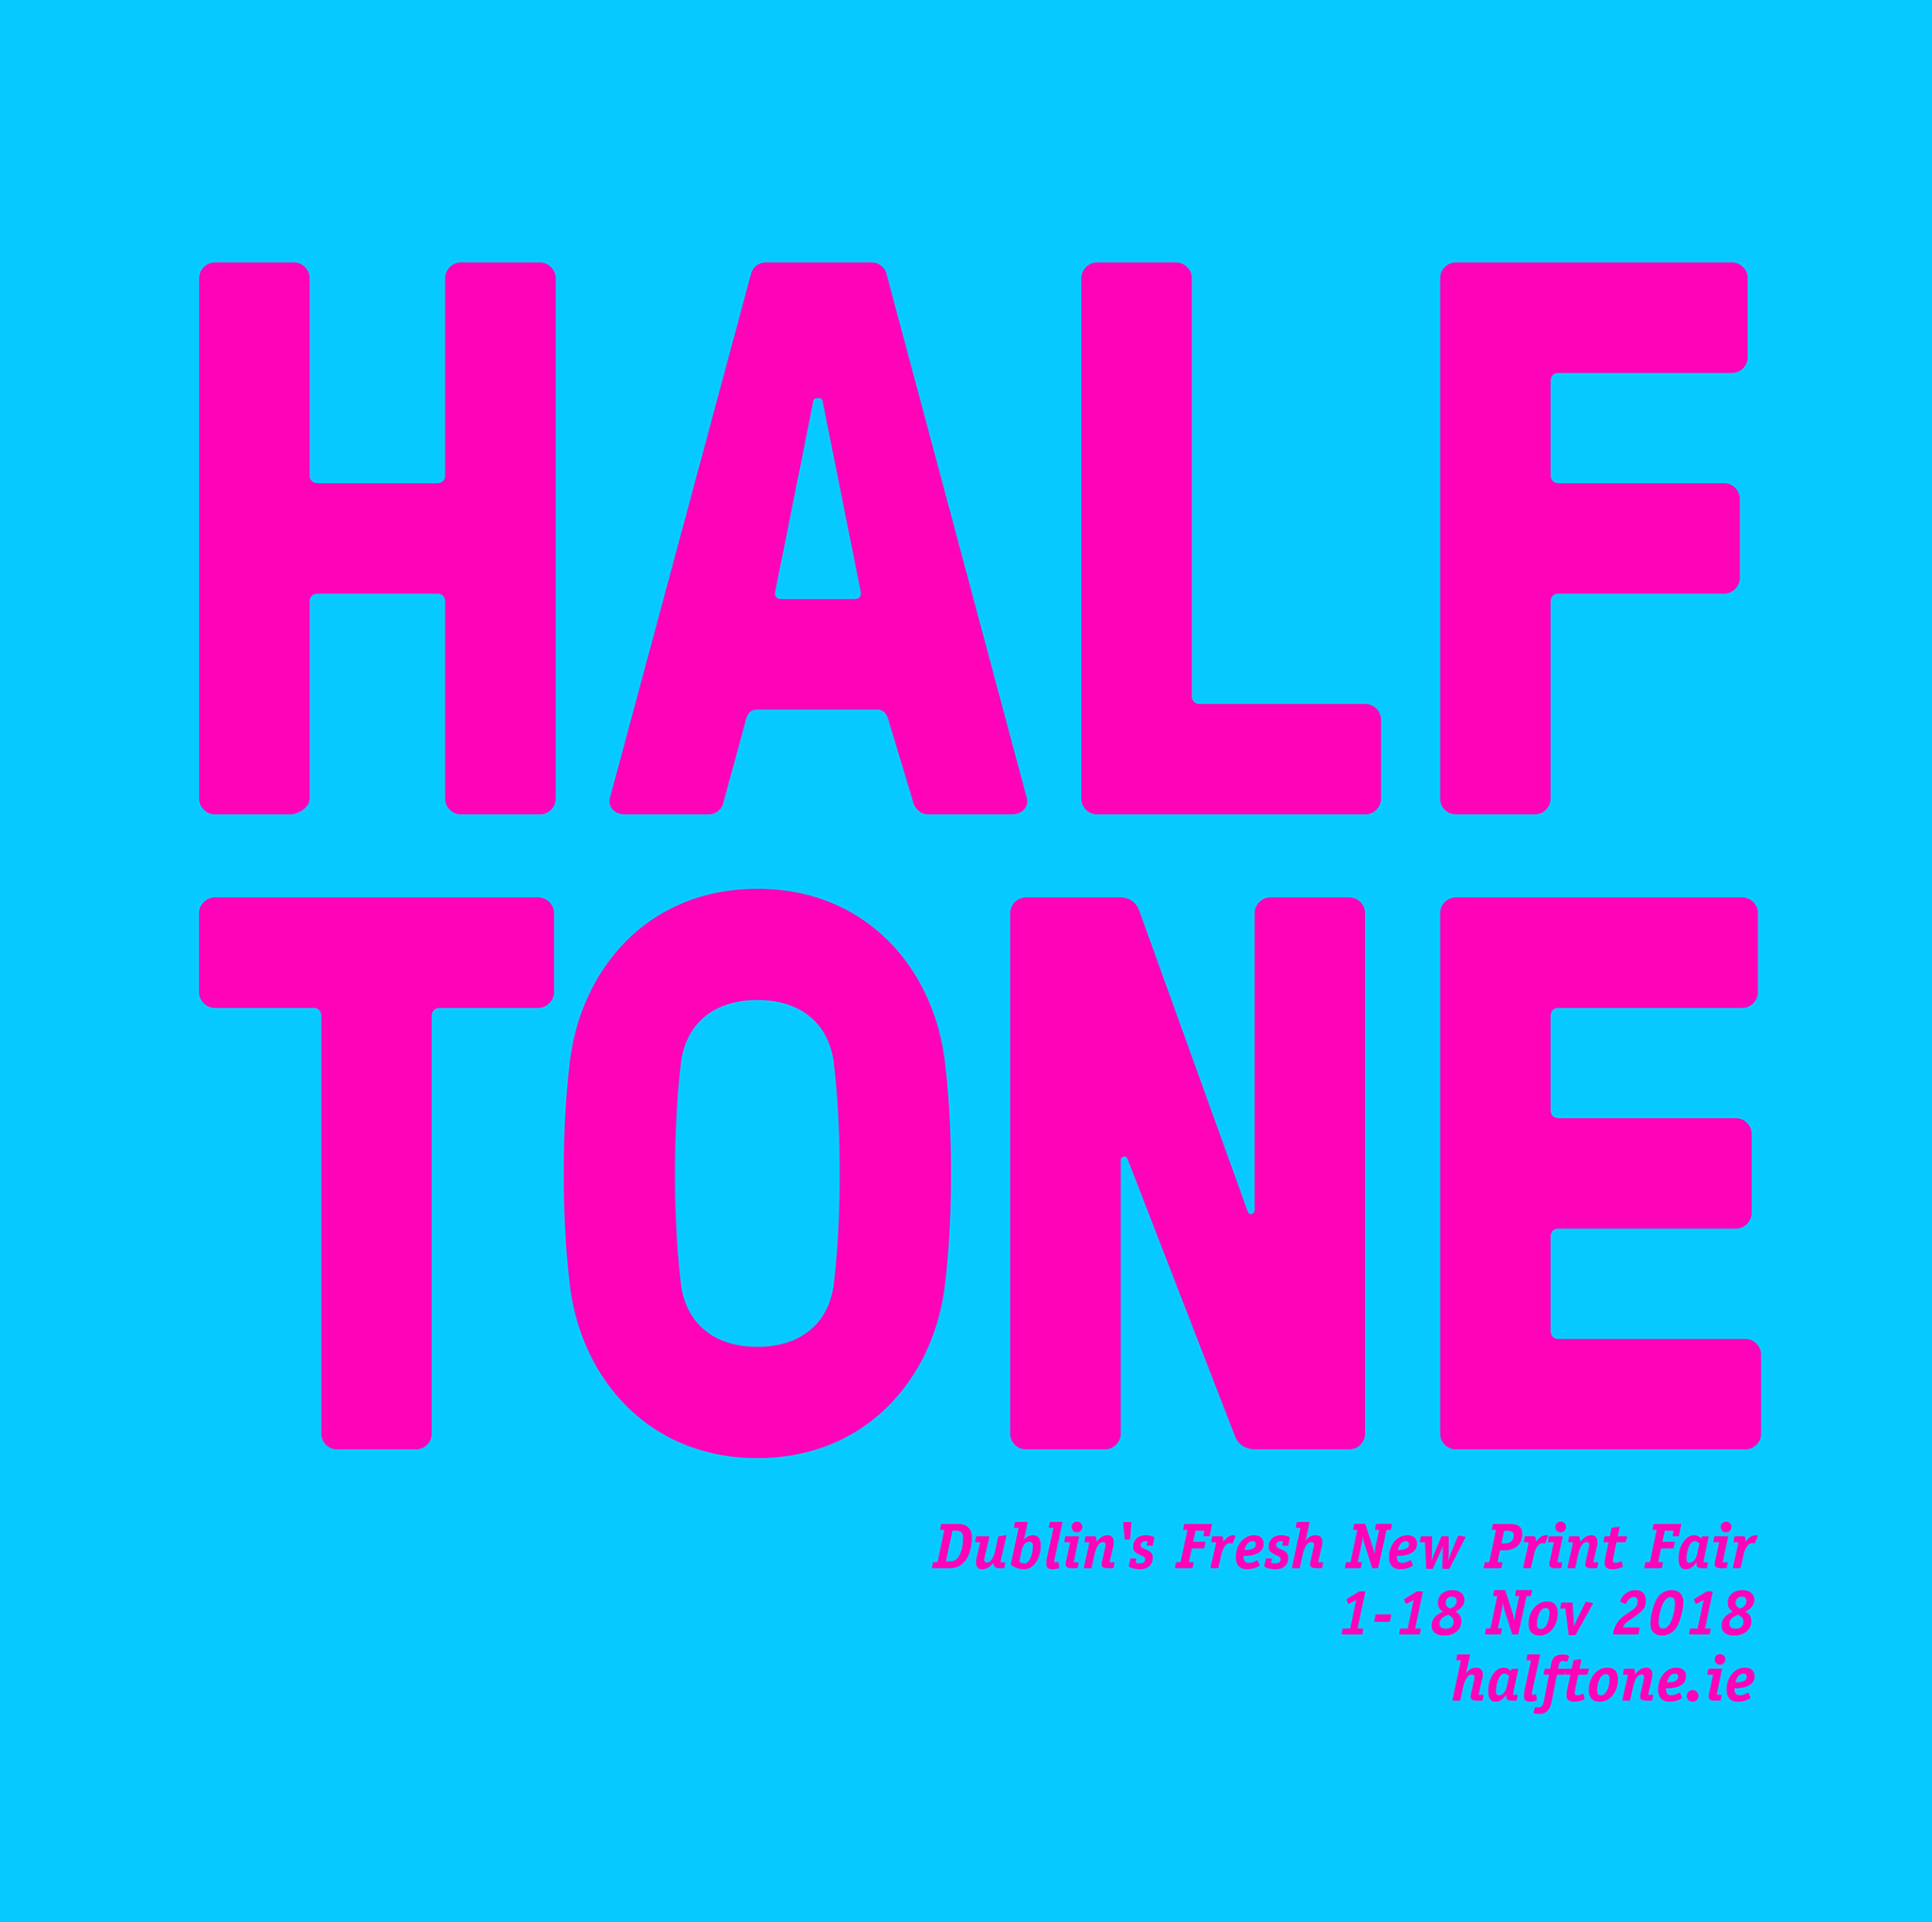 Halftione - Dublin's Fresh New Print Fair 1-18 Nov 2018